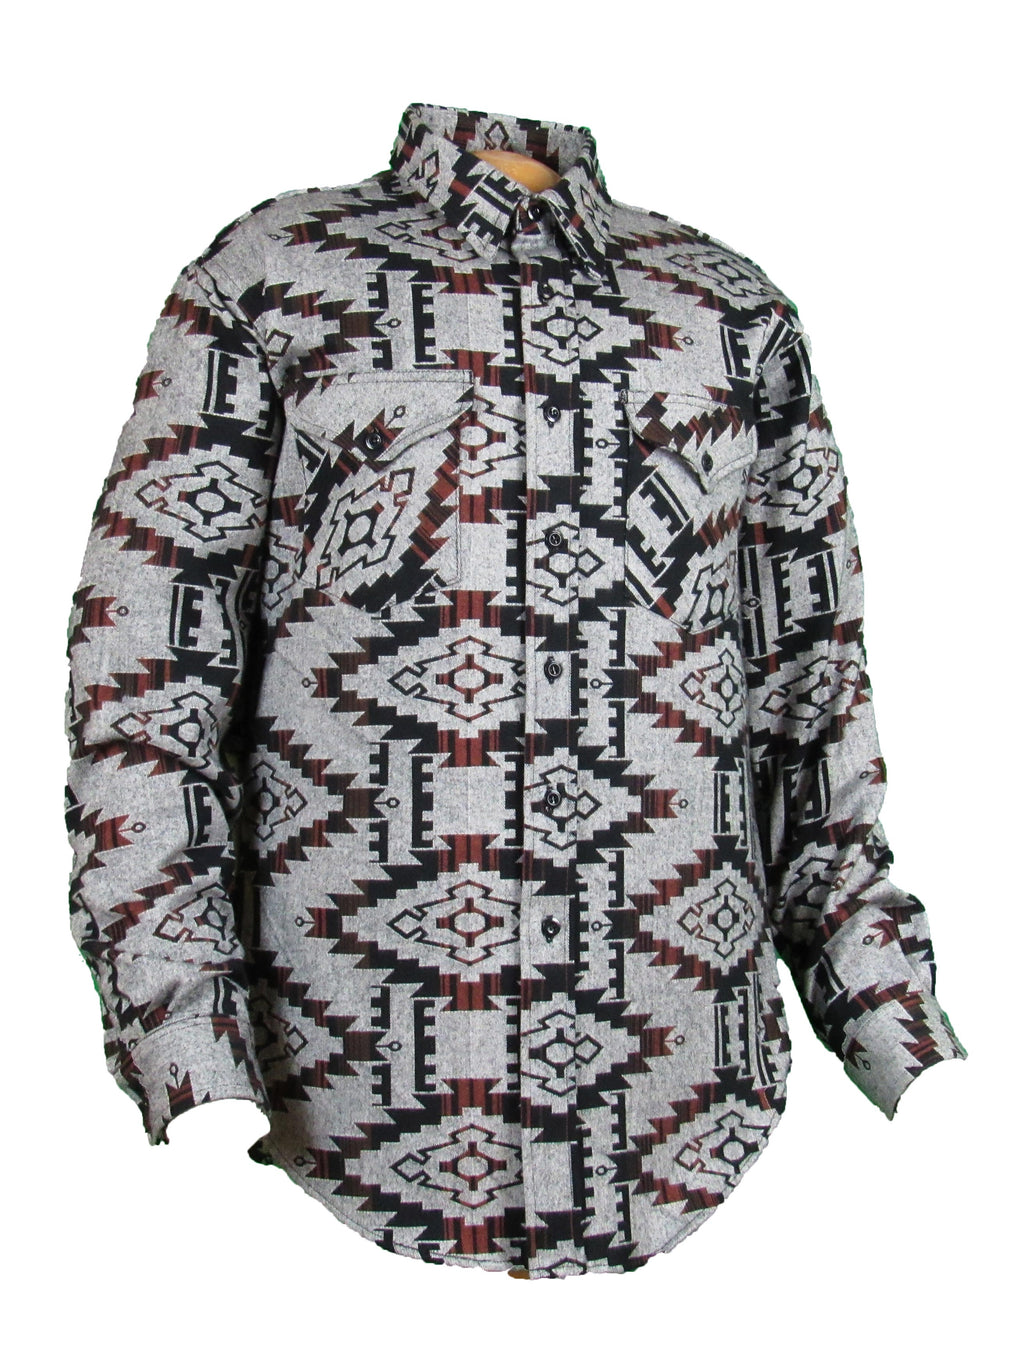 Flying R Ranchwear - Flannel Overshirt - Brown Southwest Print - Buttons